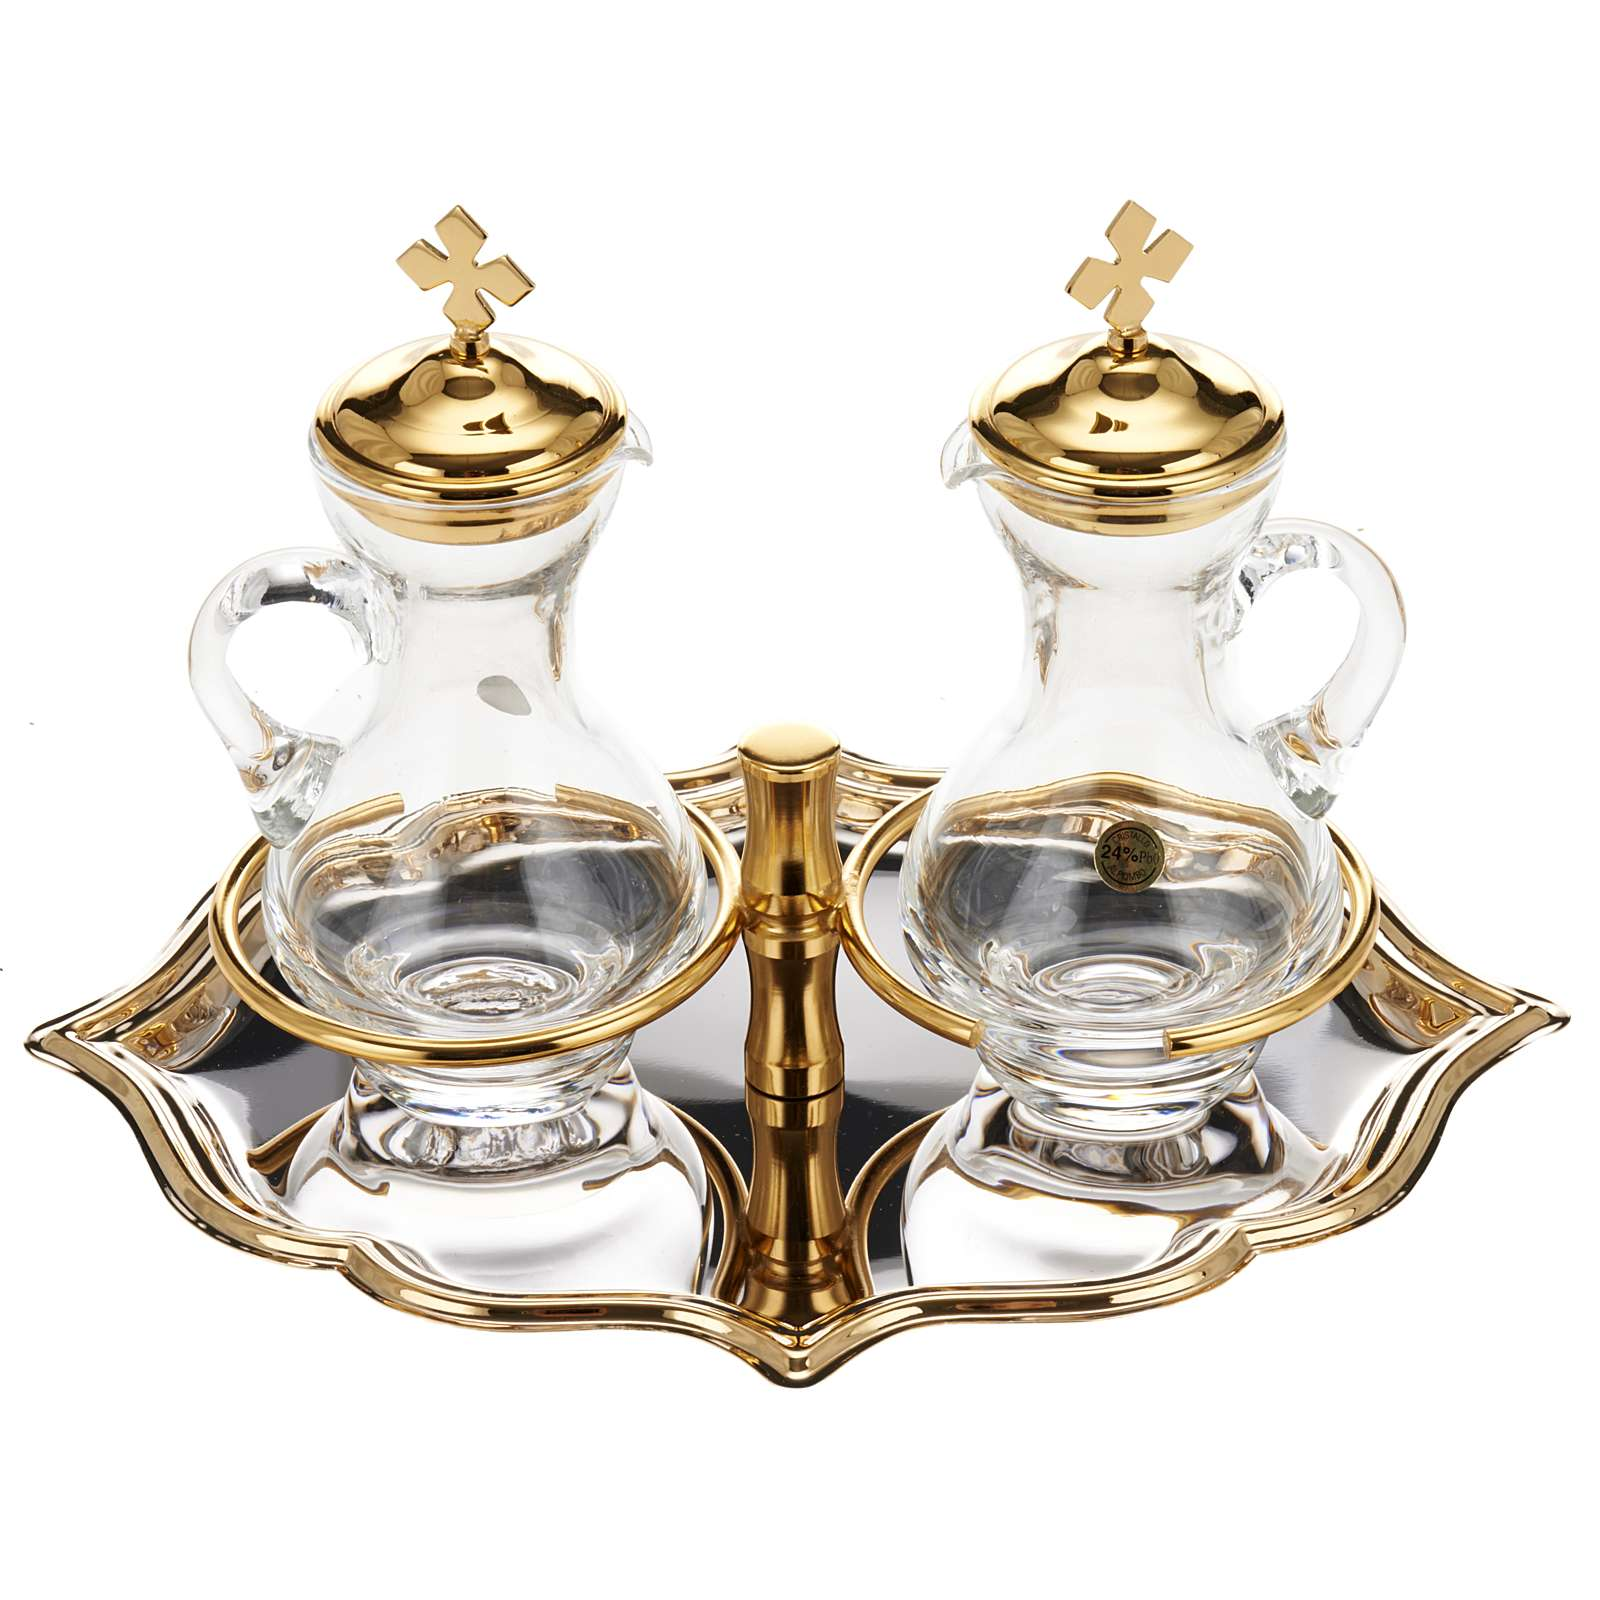 Glass cruet set with nickel and gold-plated brass tray 4